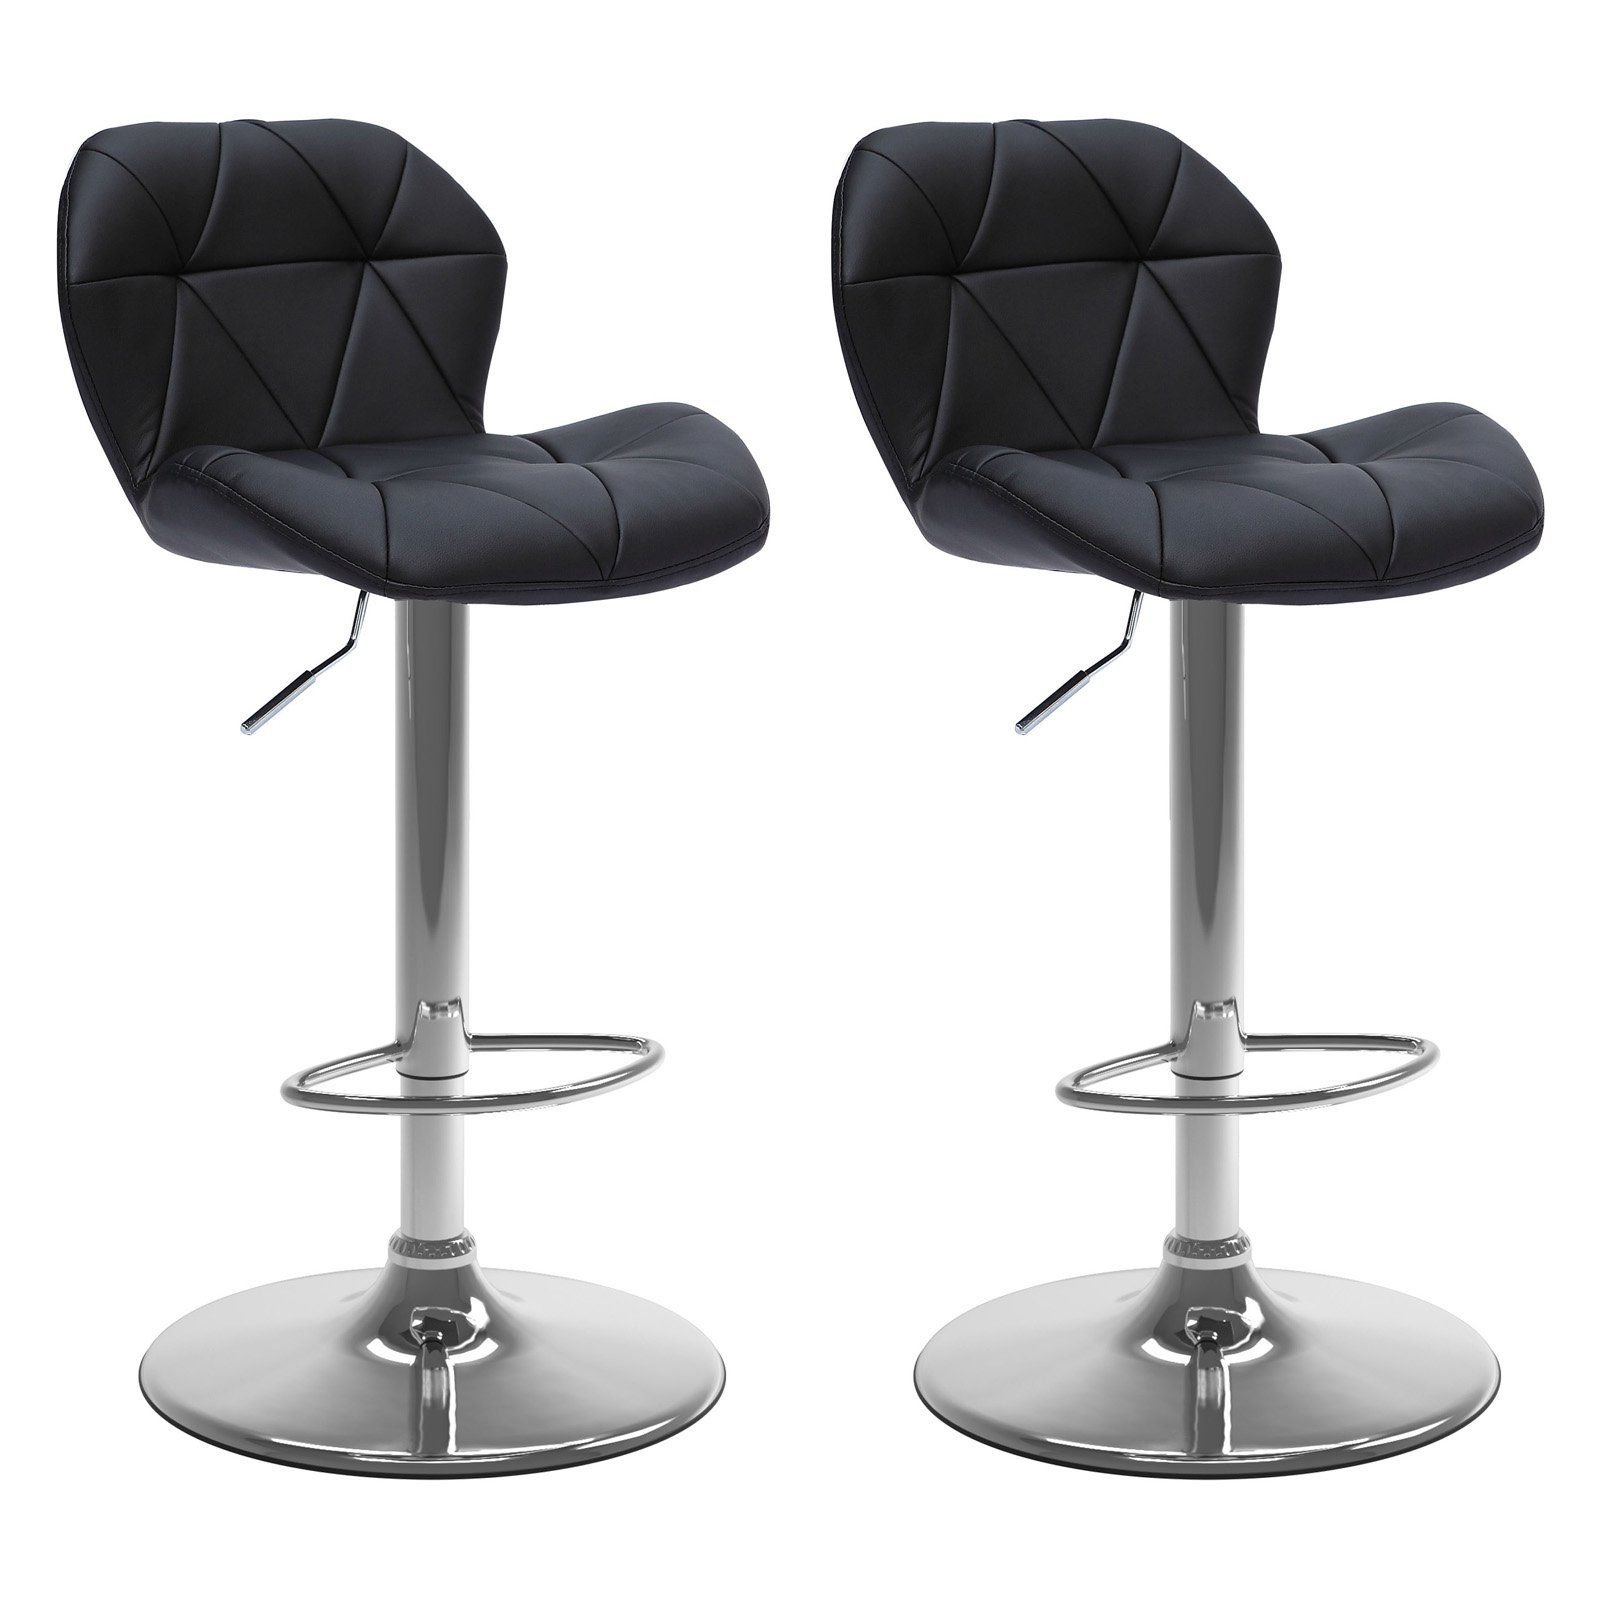 Astonishing Corliving Adjustable Bonded Leather Bar Stool Set Of 2 In Machost Co Dining Chair Design Ideas Machostcouk